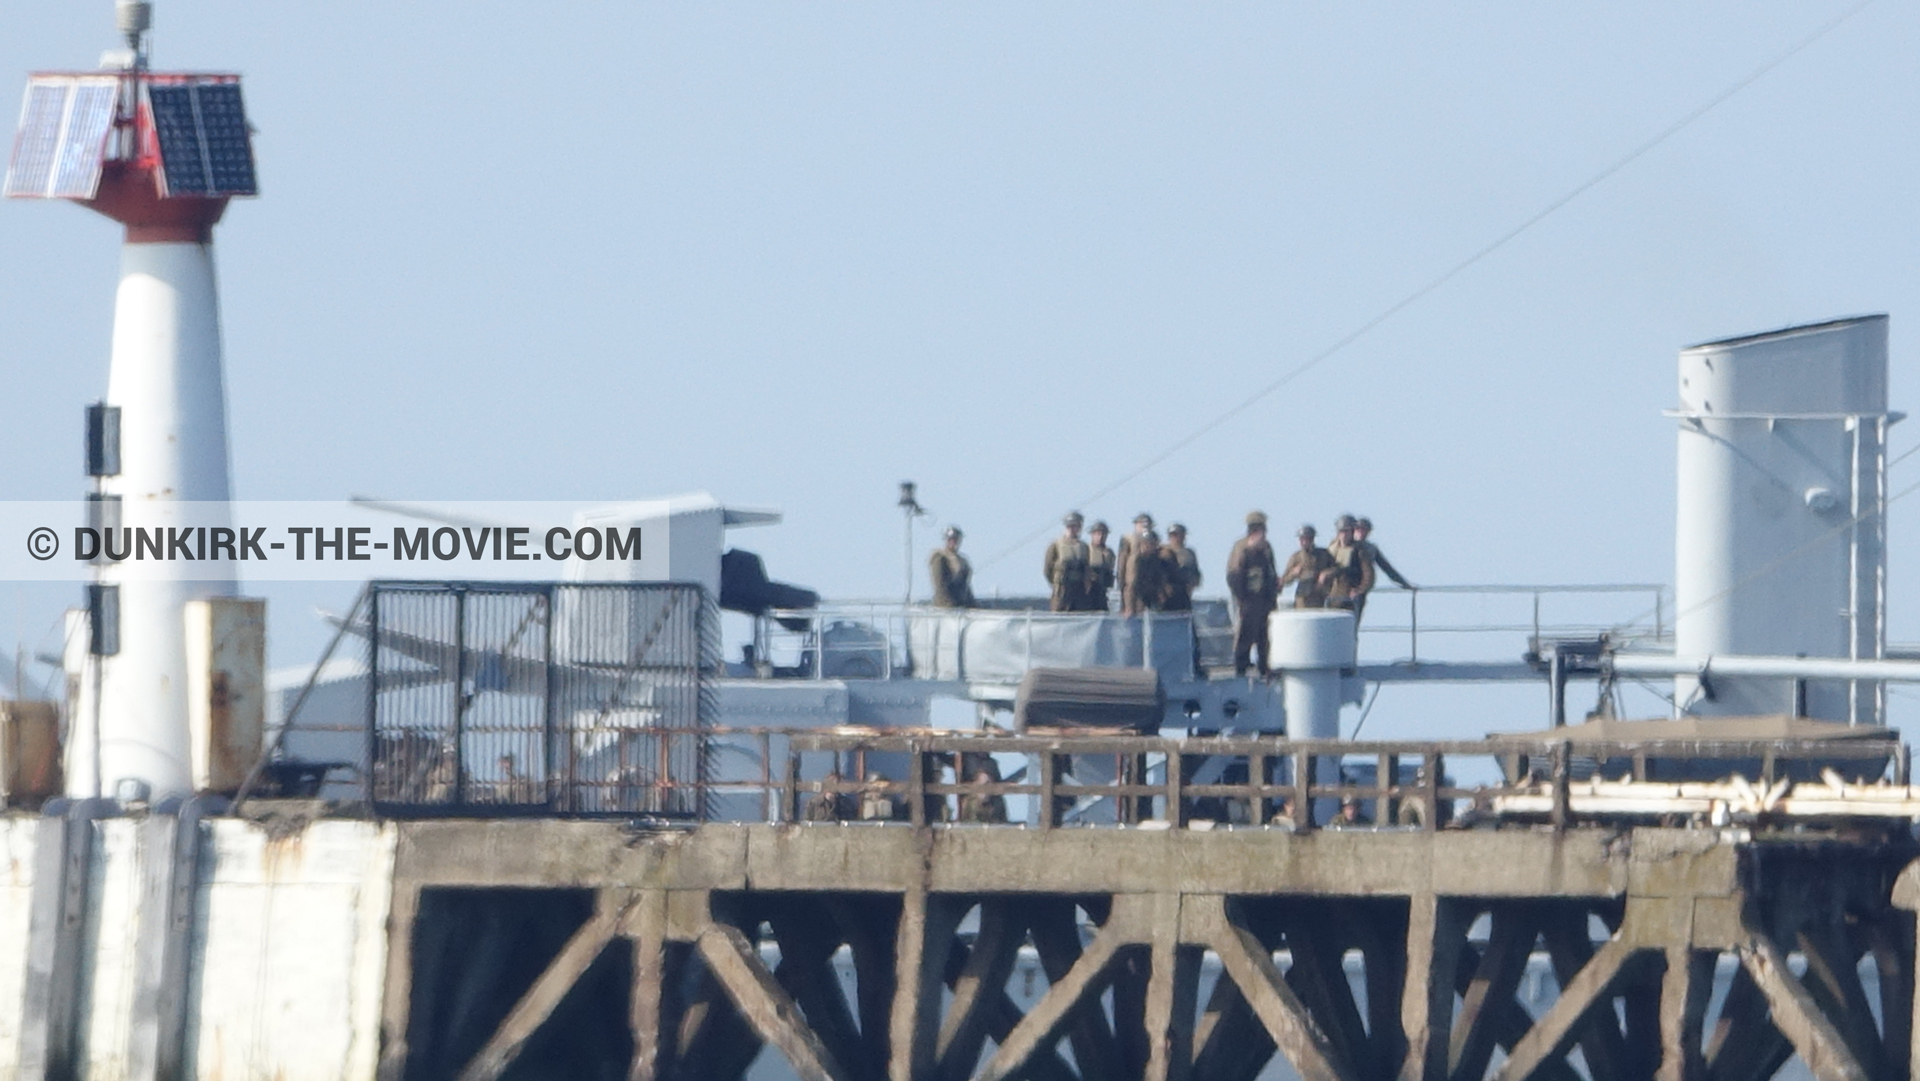 Picture with blue sky, supernumeraries,  from behind the scene of the Dunkirk movie by Nolan